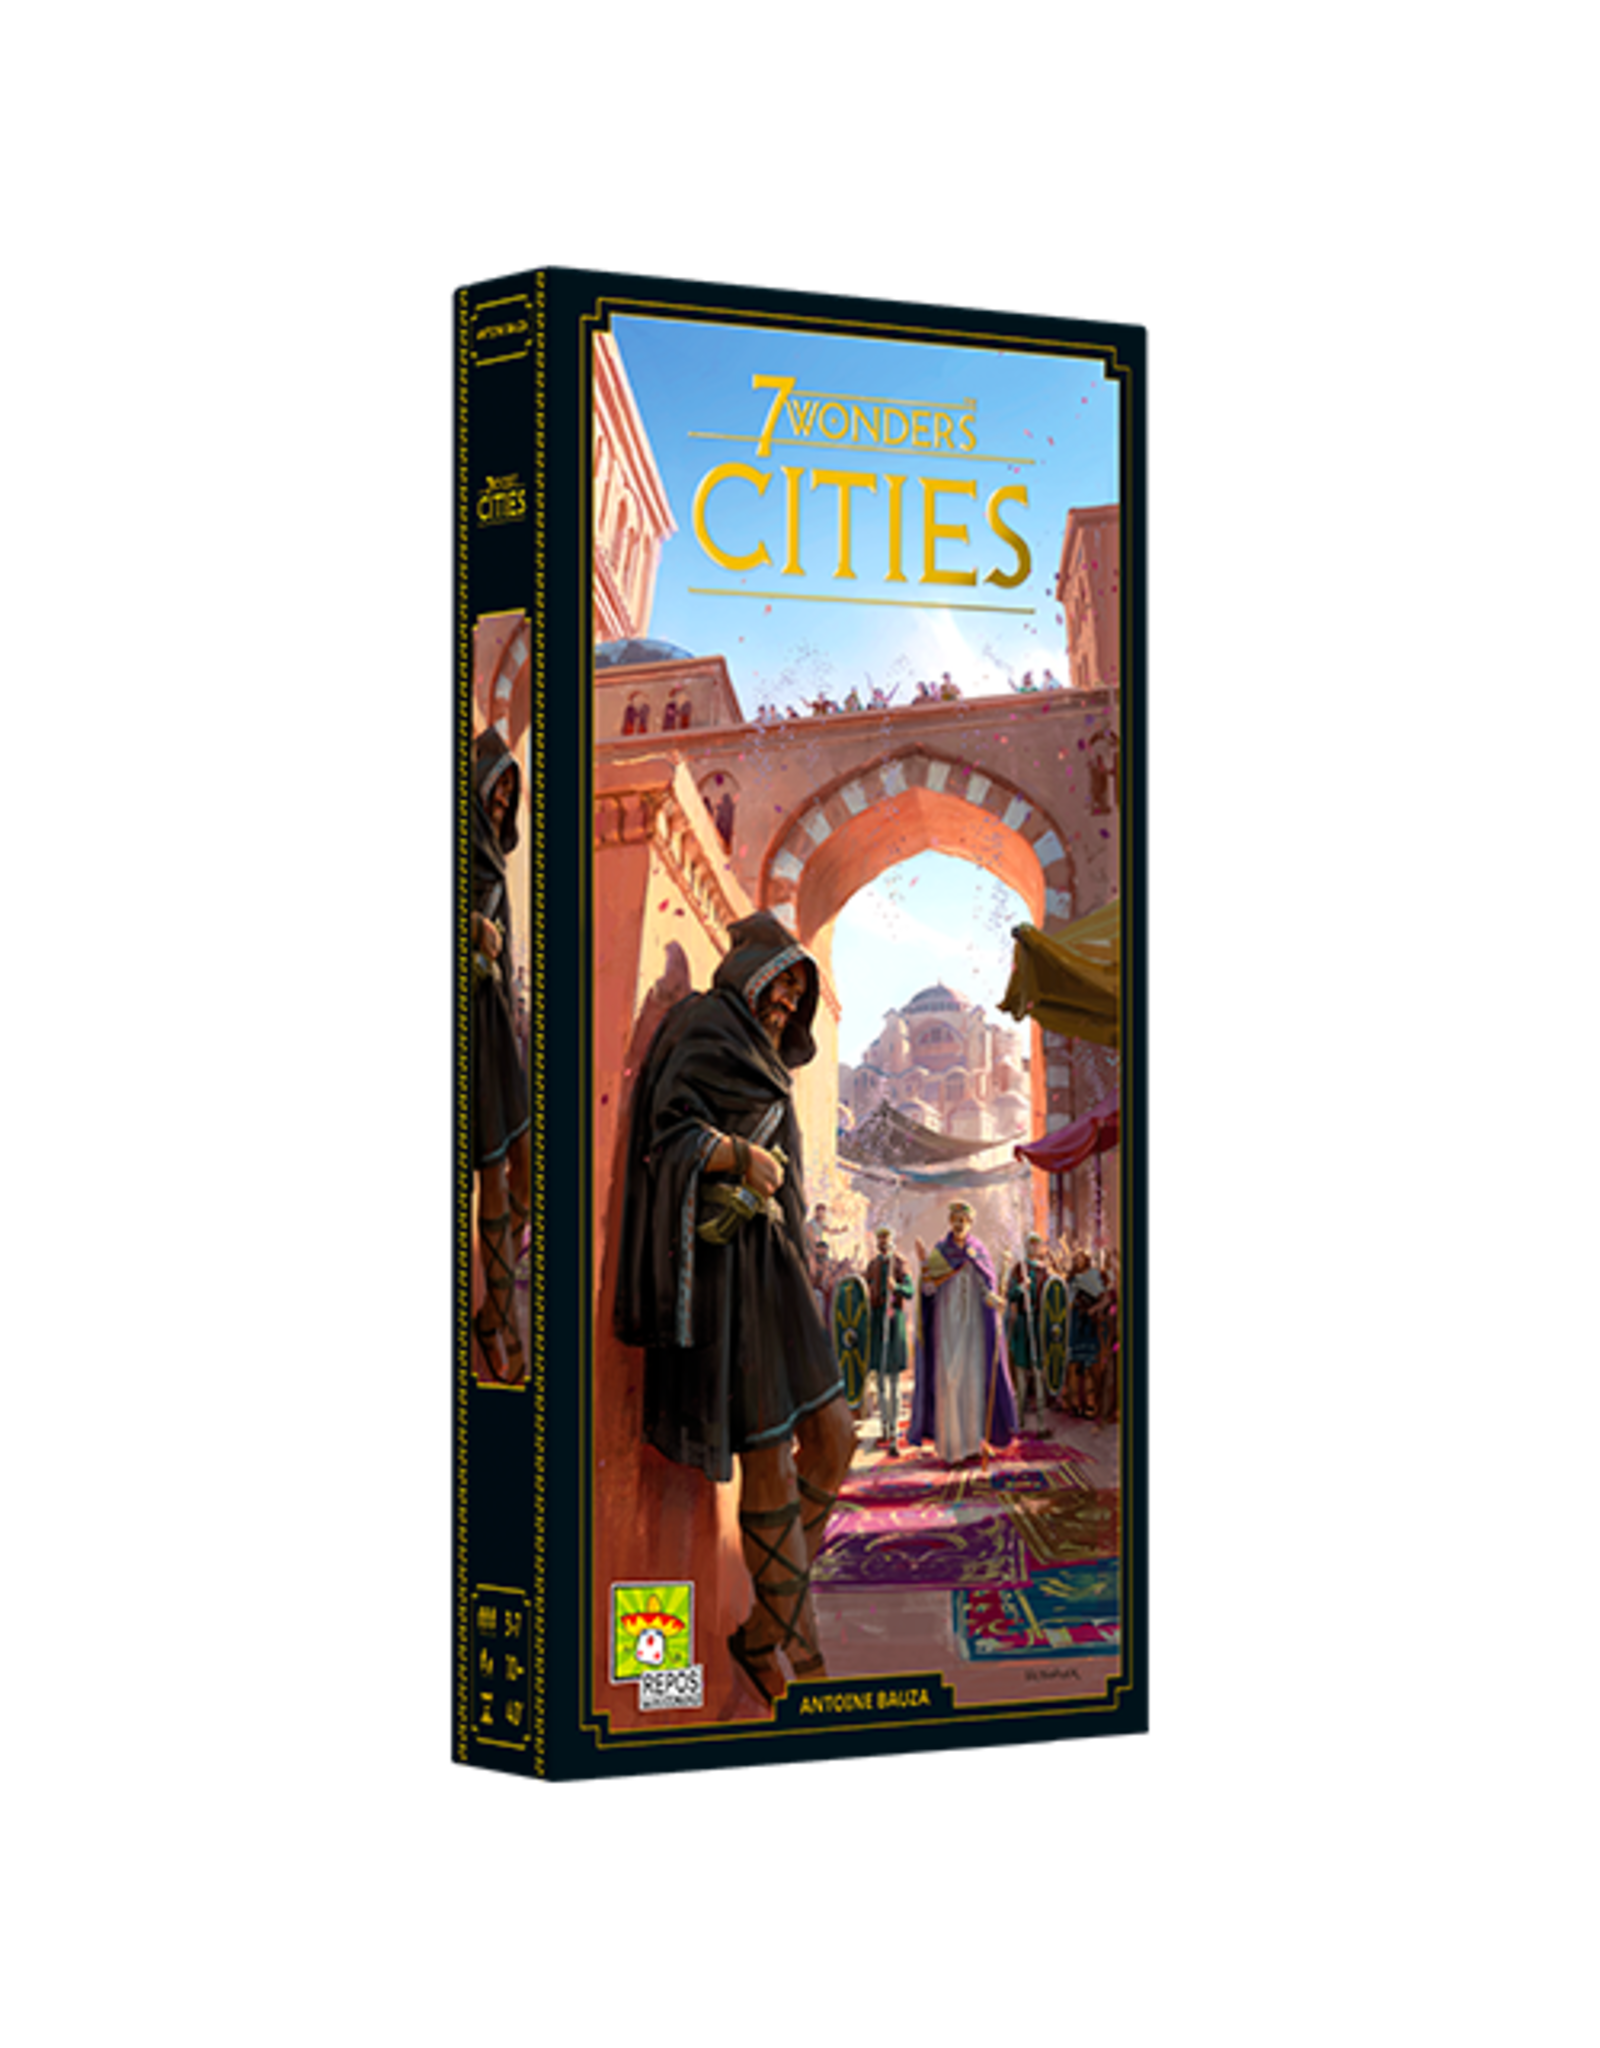 Repos Production 7 Wonders Cities (New edition)